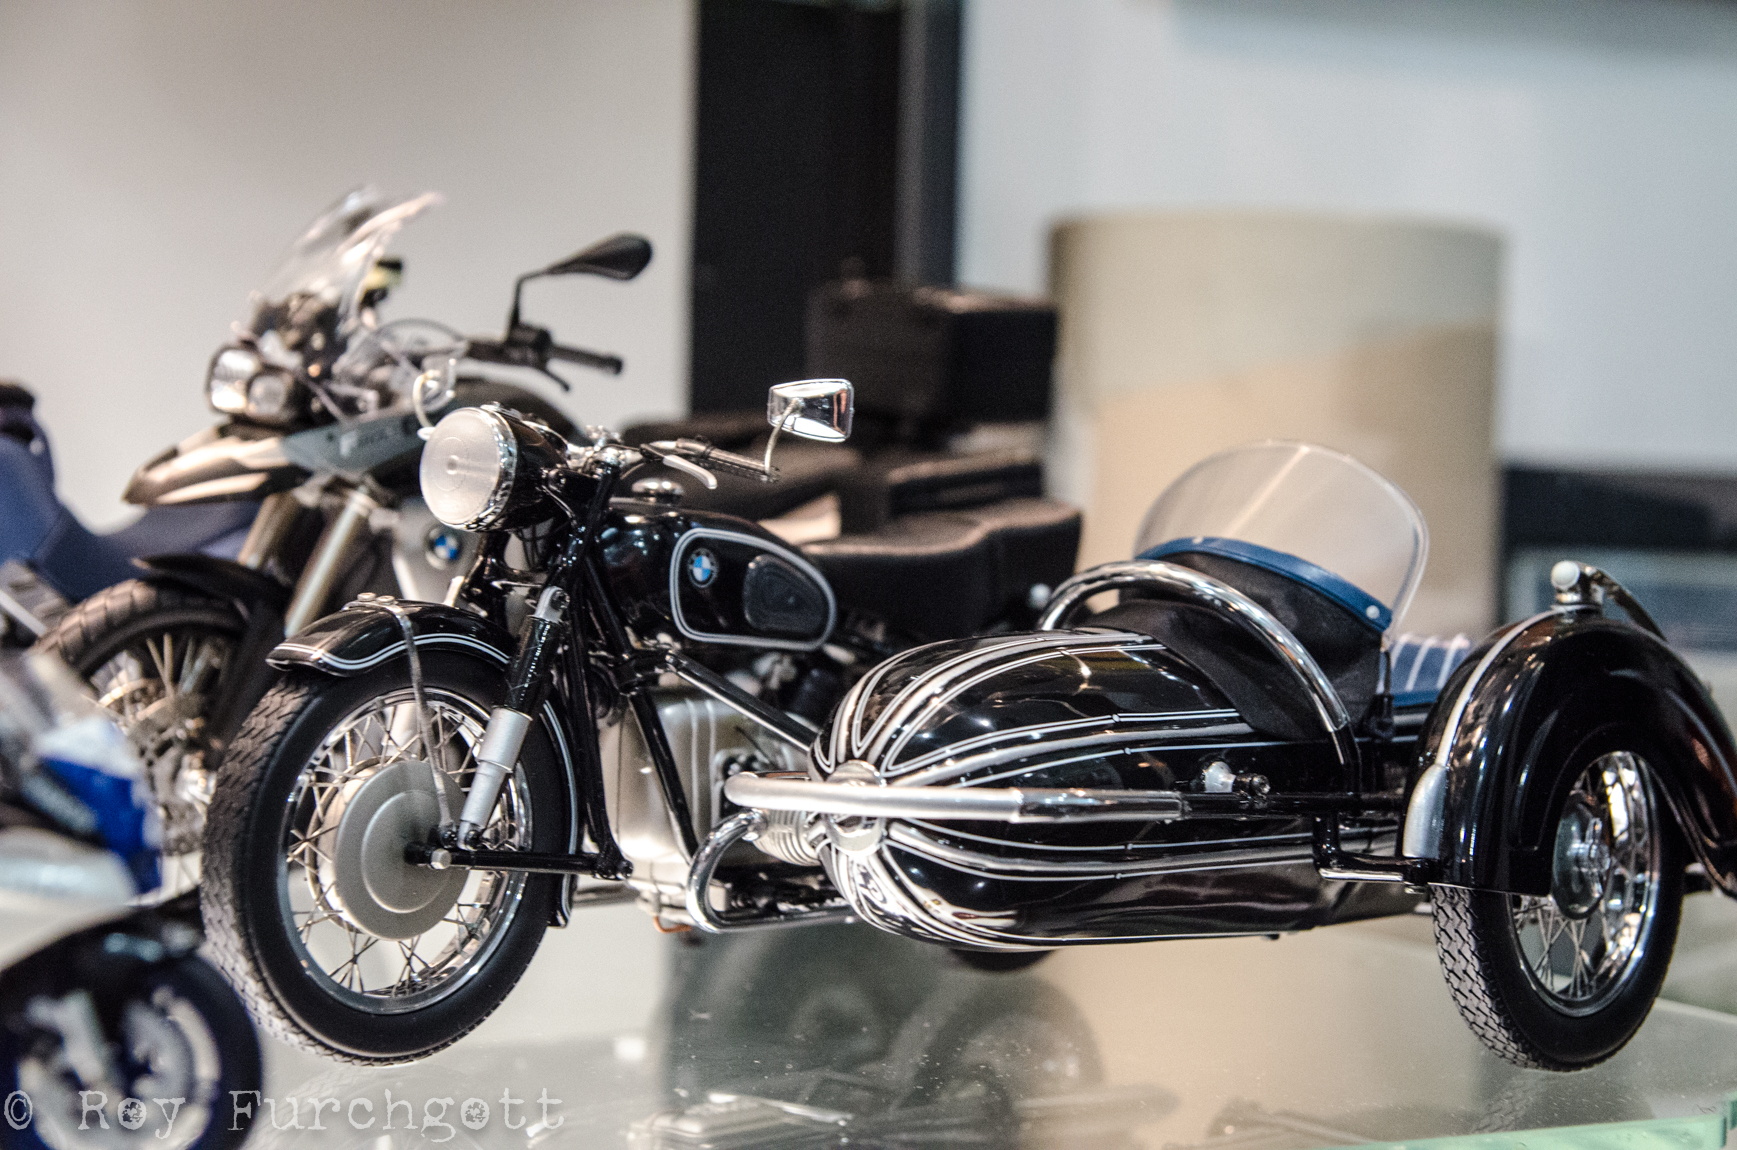 Some miniature BMW sidecars are among Henig's garage showcase of collectibles.